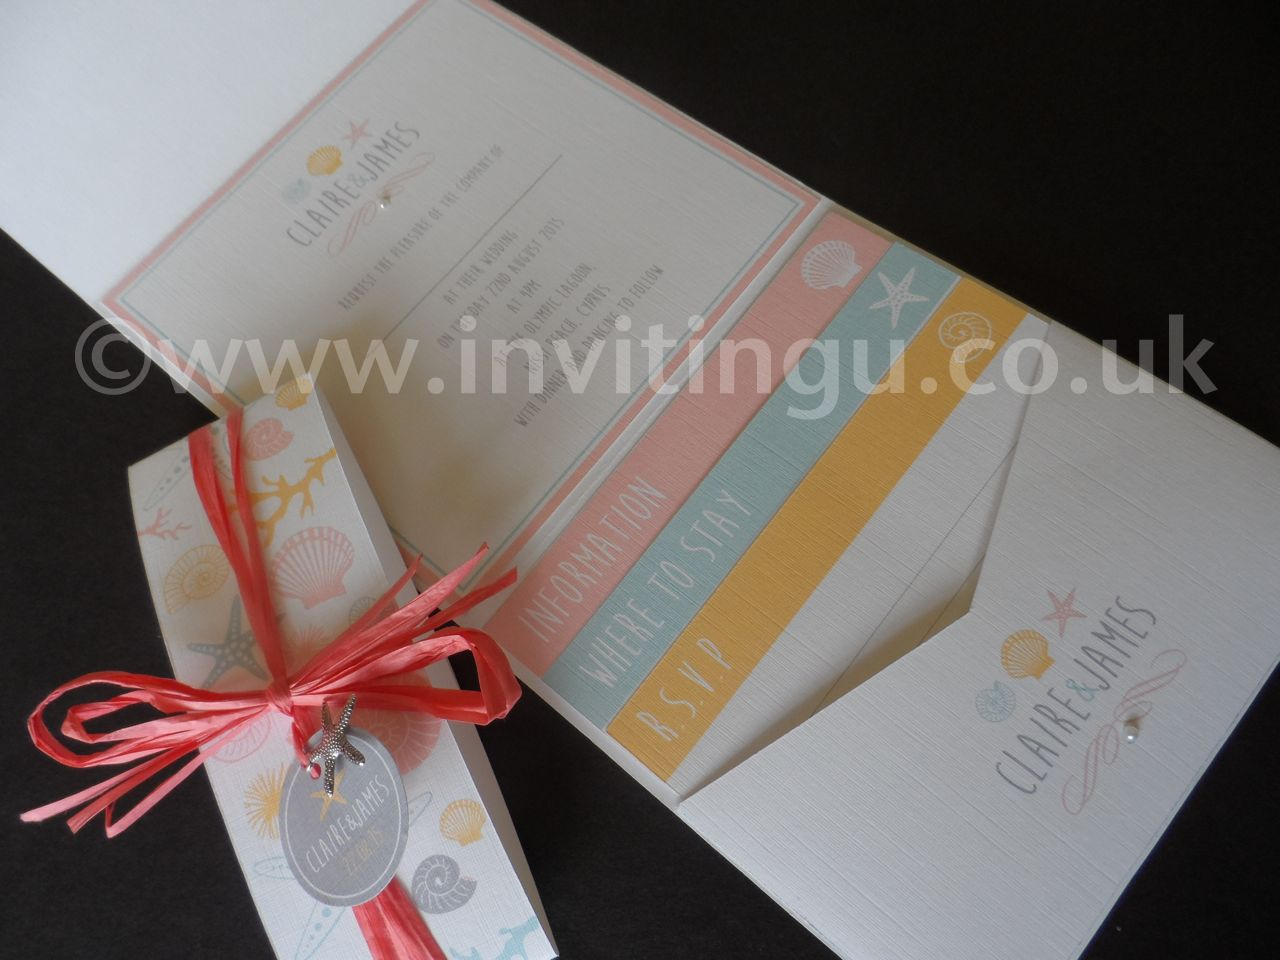 wedding stationery packages uk%0A Beach and shell themed wedding invites with Starfish charm    www invitingu co